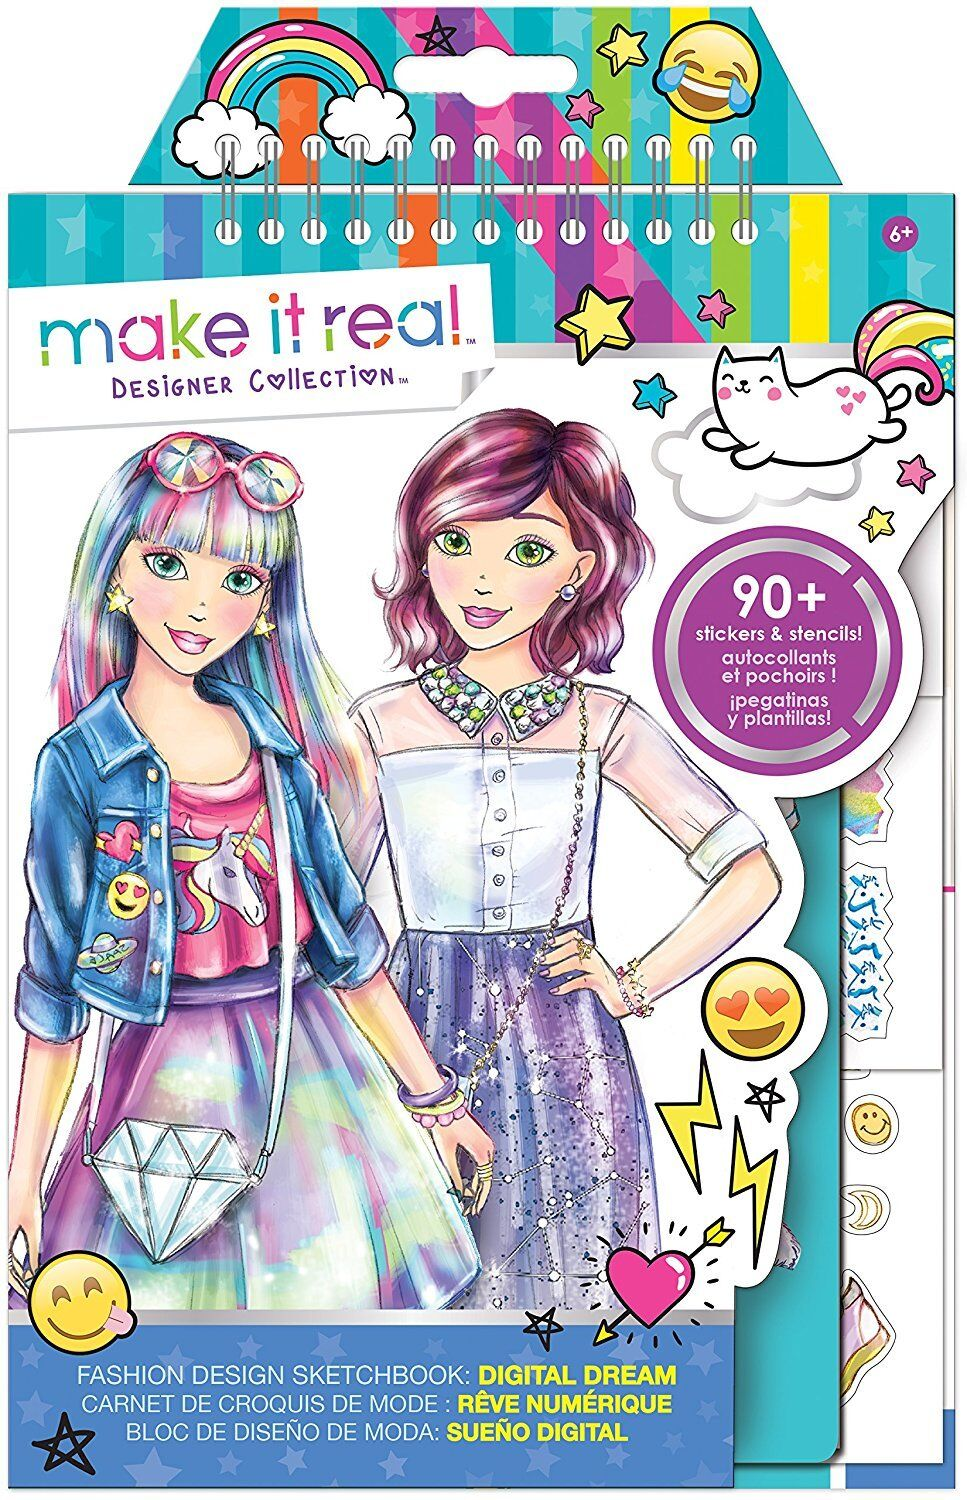 Make It Real - Moda Diseño Cuaderno de Bocetos - Digital Sueño